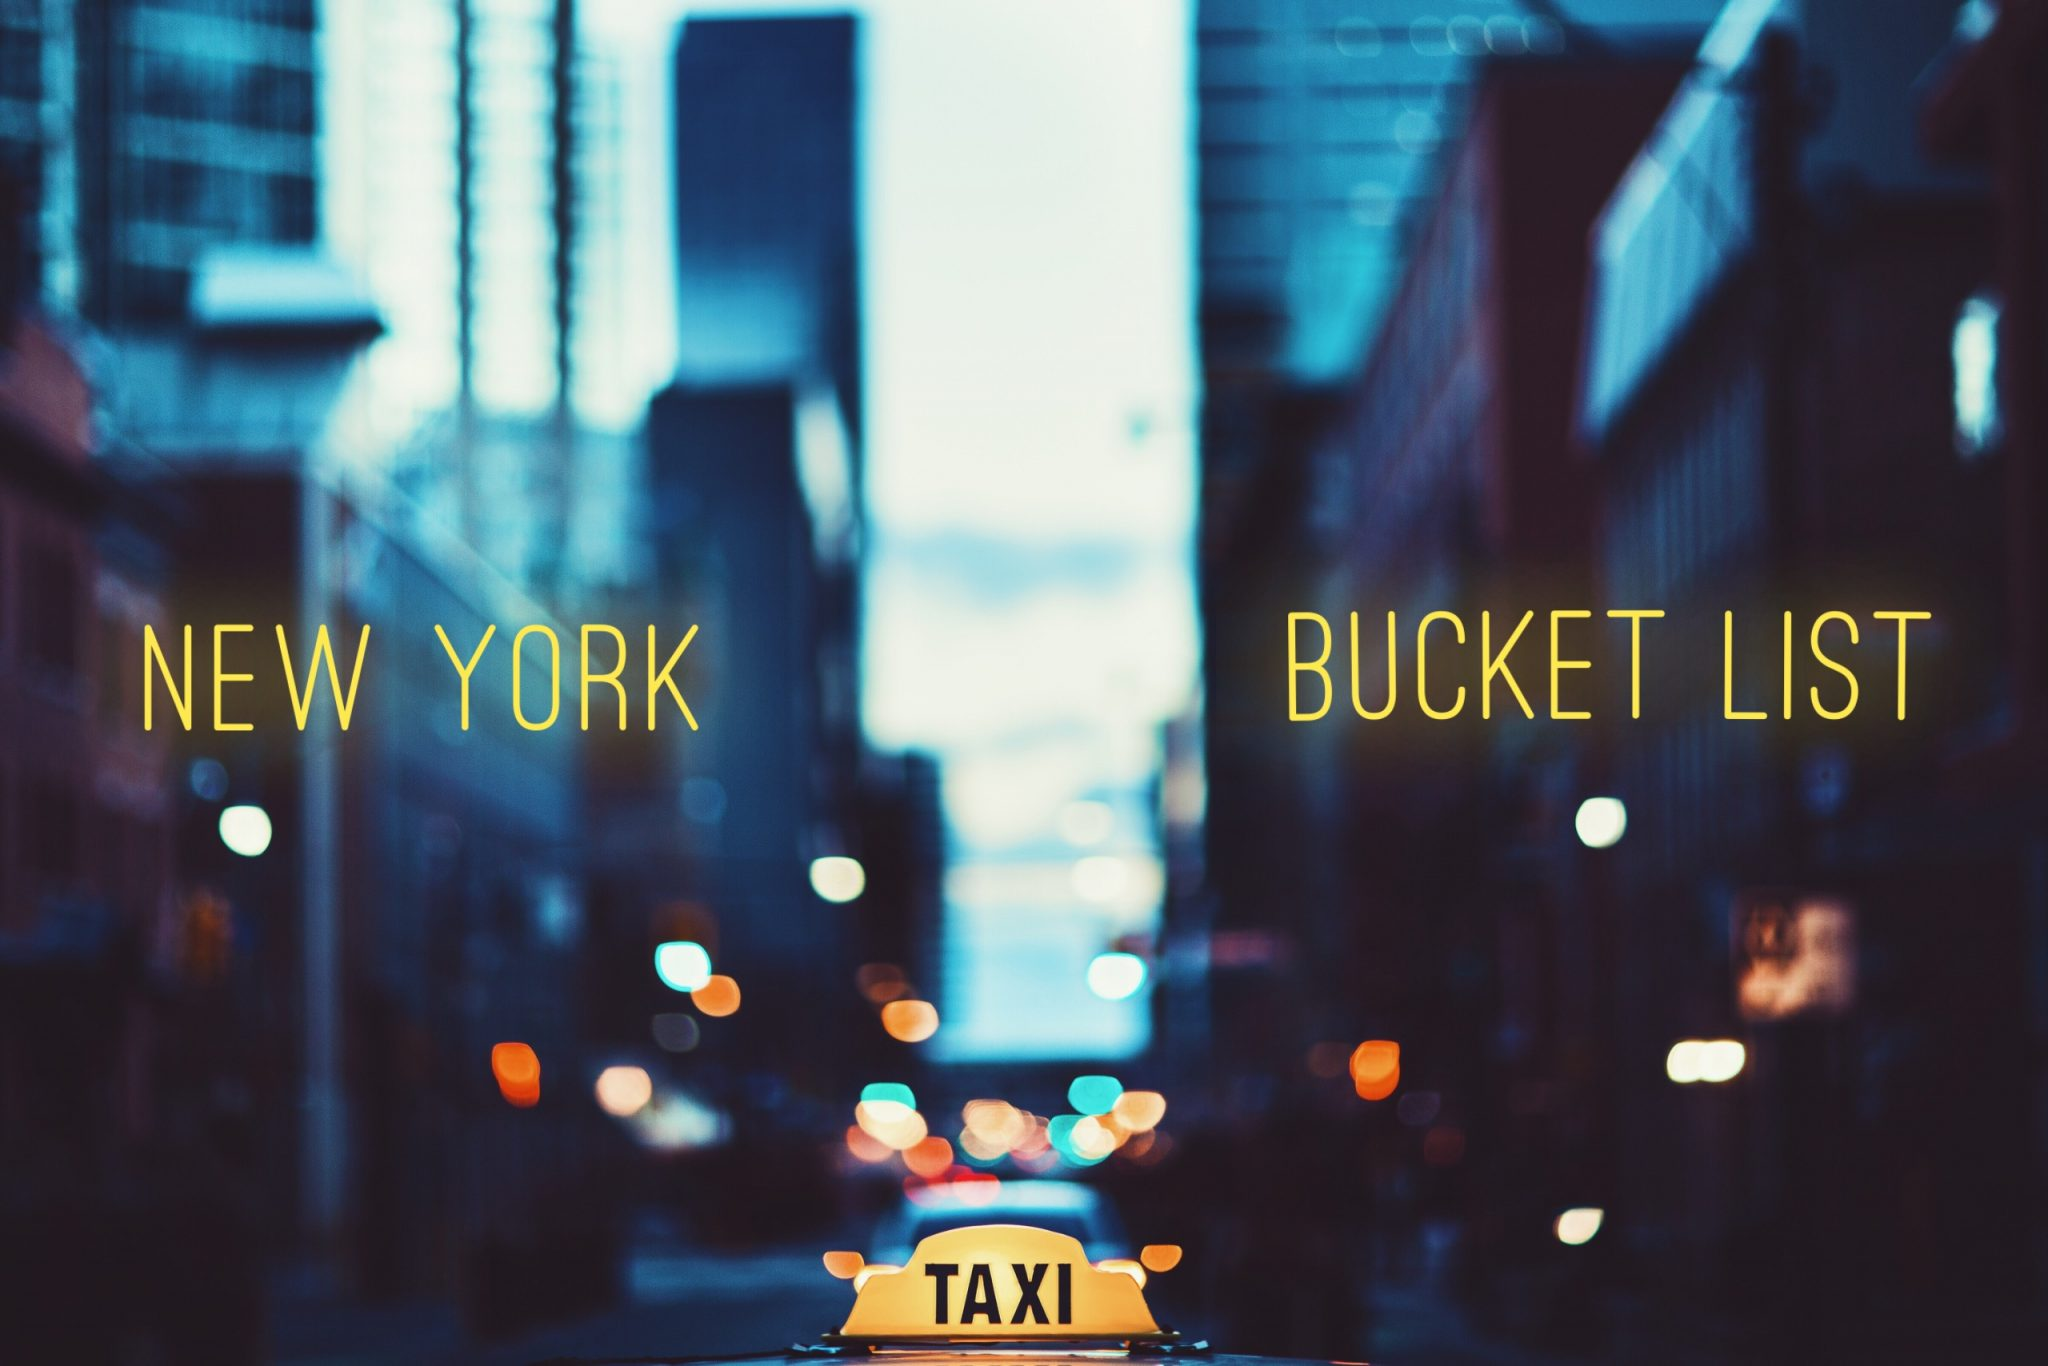 New York Bucket List